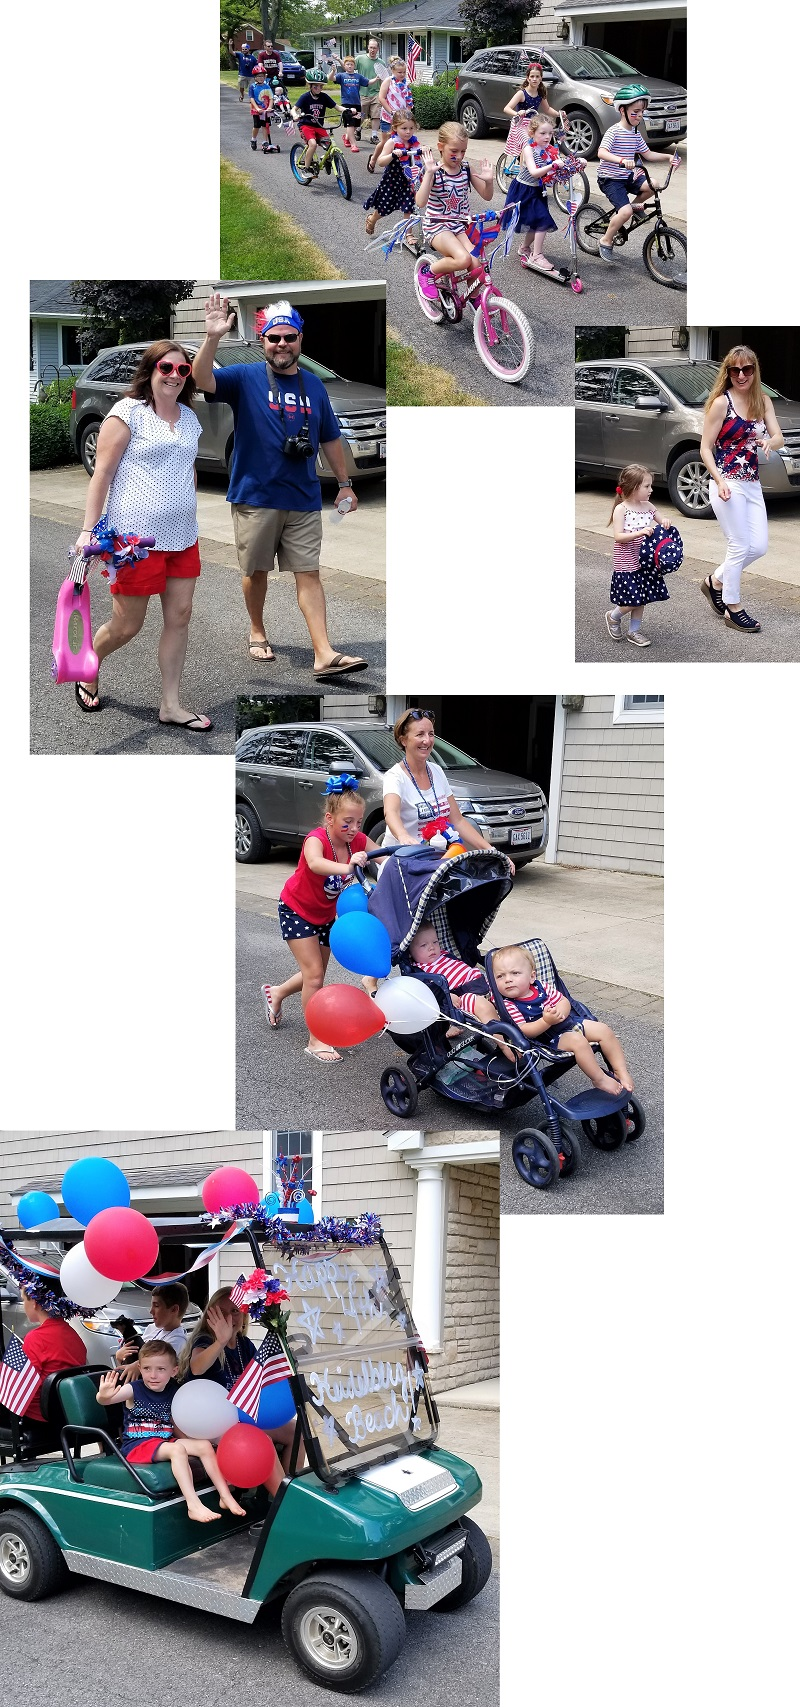 2019 4th of July Parade at Heidelberg Beach